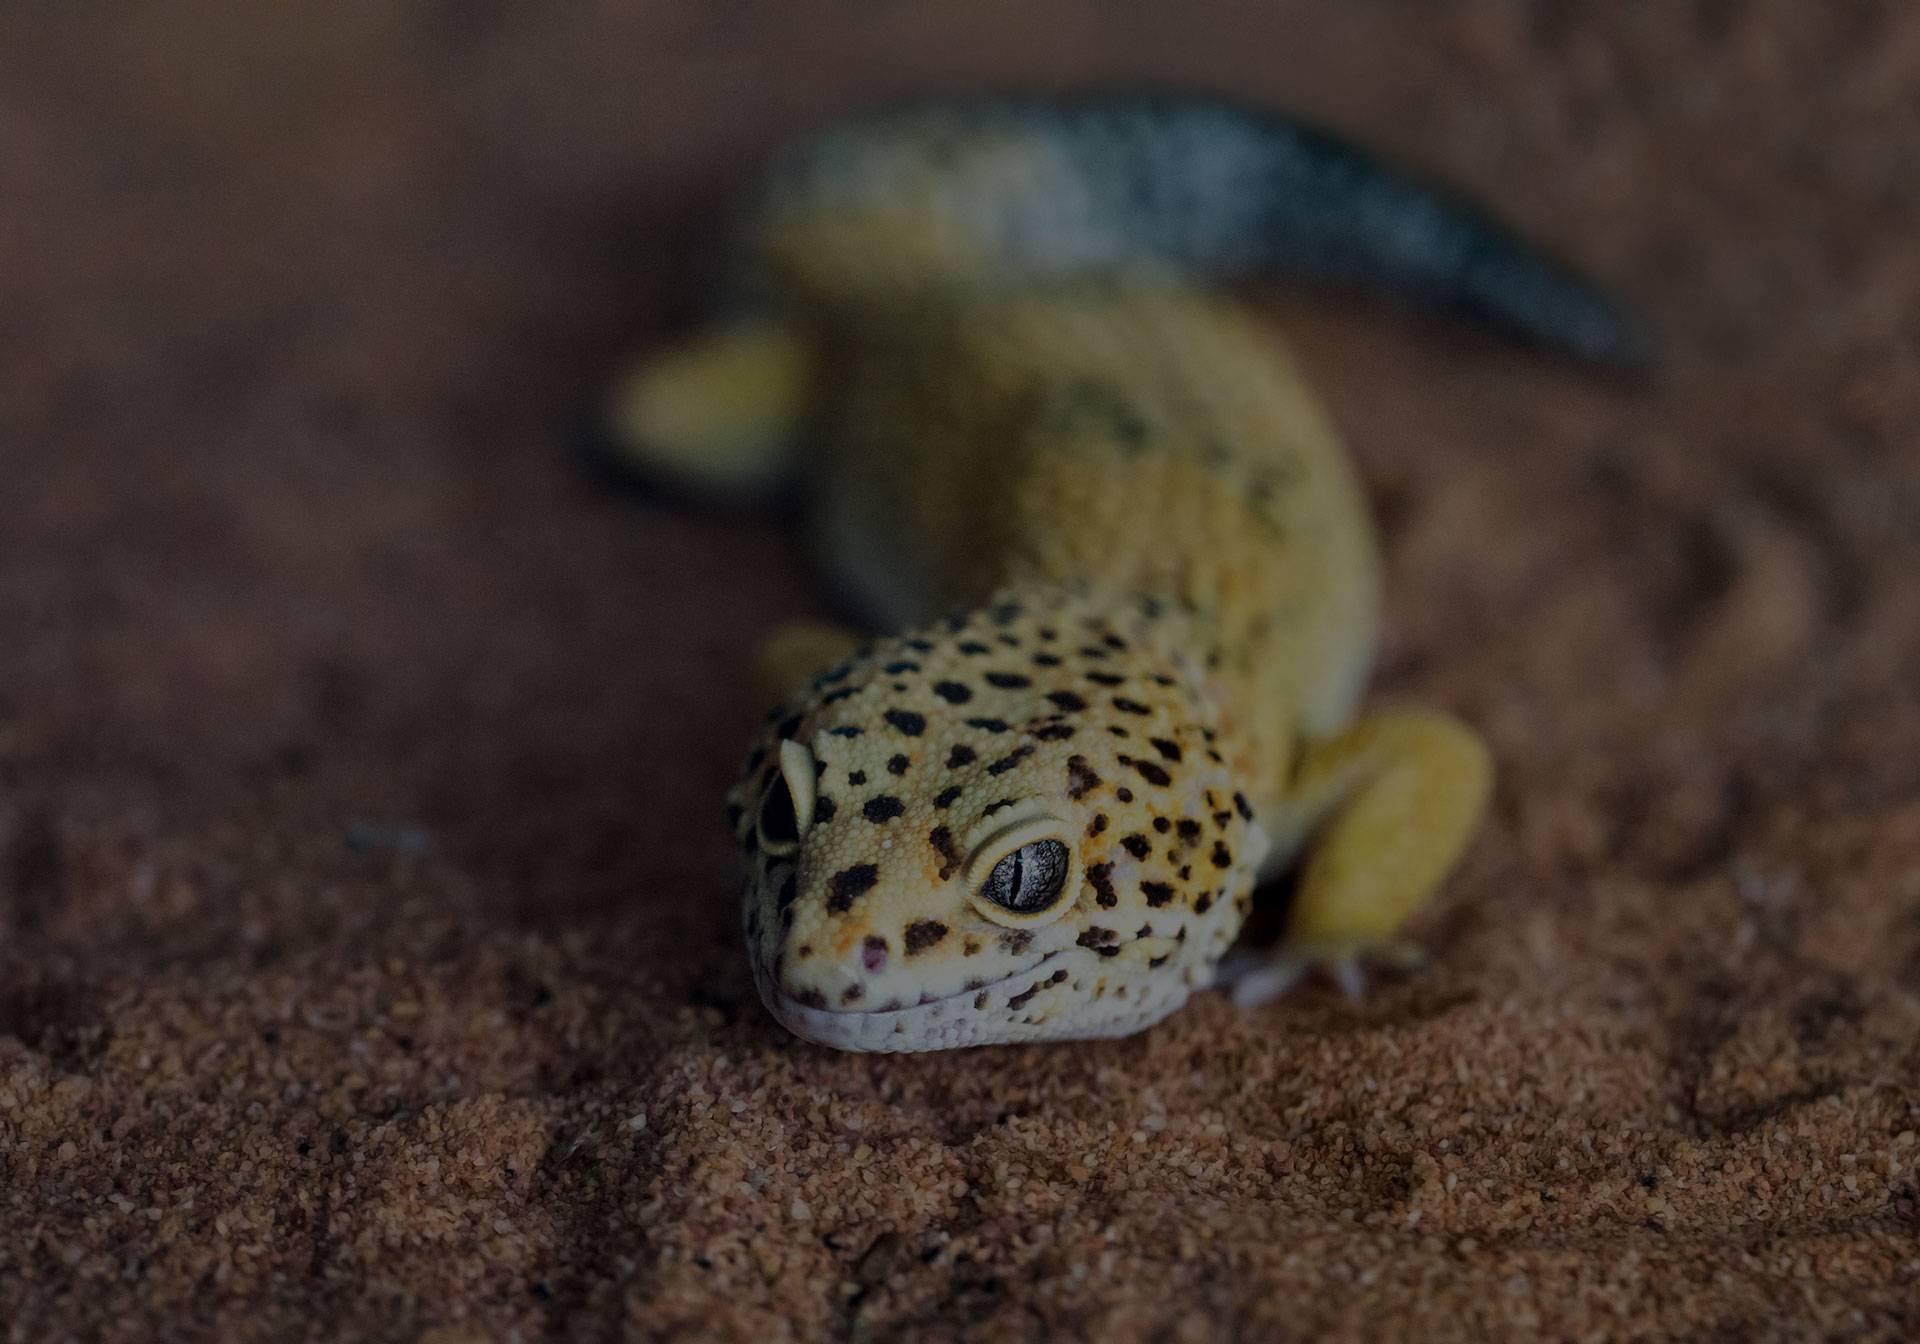 Leopard gecko Eublepharis macularius in the Zoo.